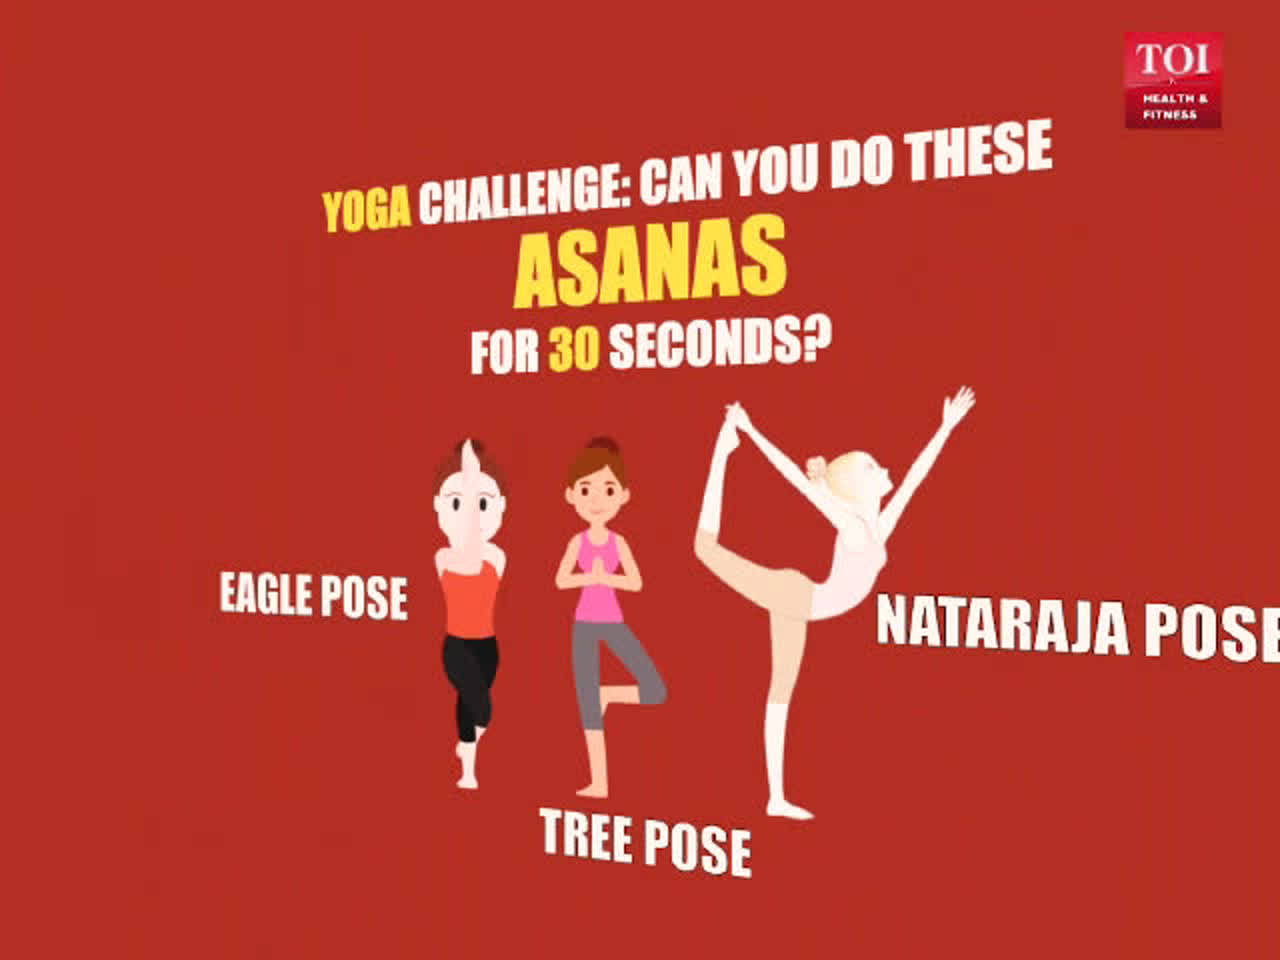 yoga-challenge-can-you-do-these-asanas-for-30-seconds